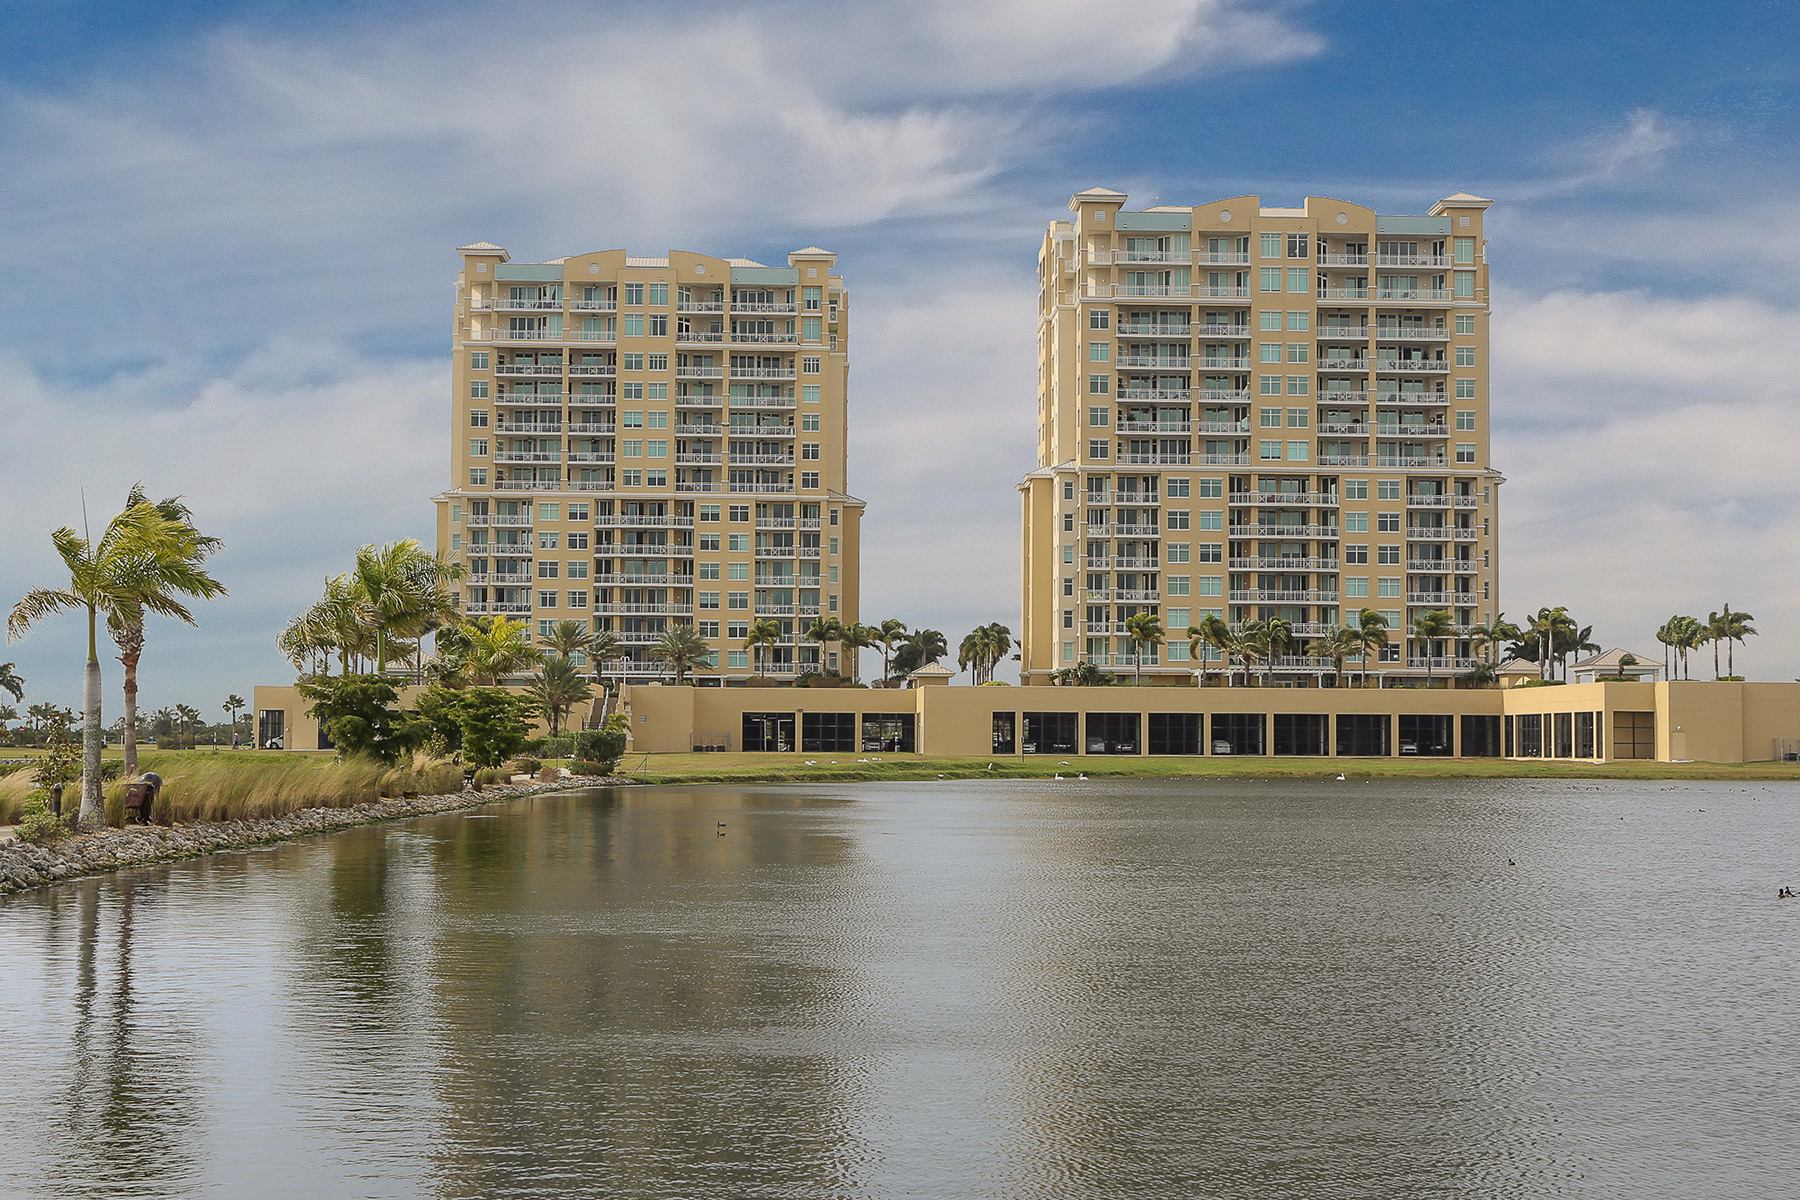 Condominium for Sale at BEL MARE 130 Riviera Dunes Way 201 Palmetto, Florida, 34221 United States